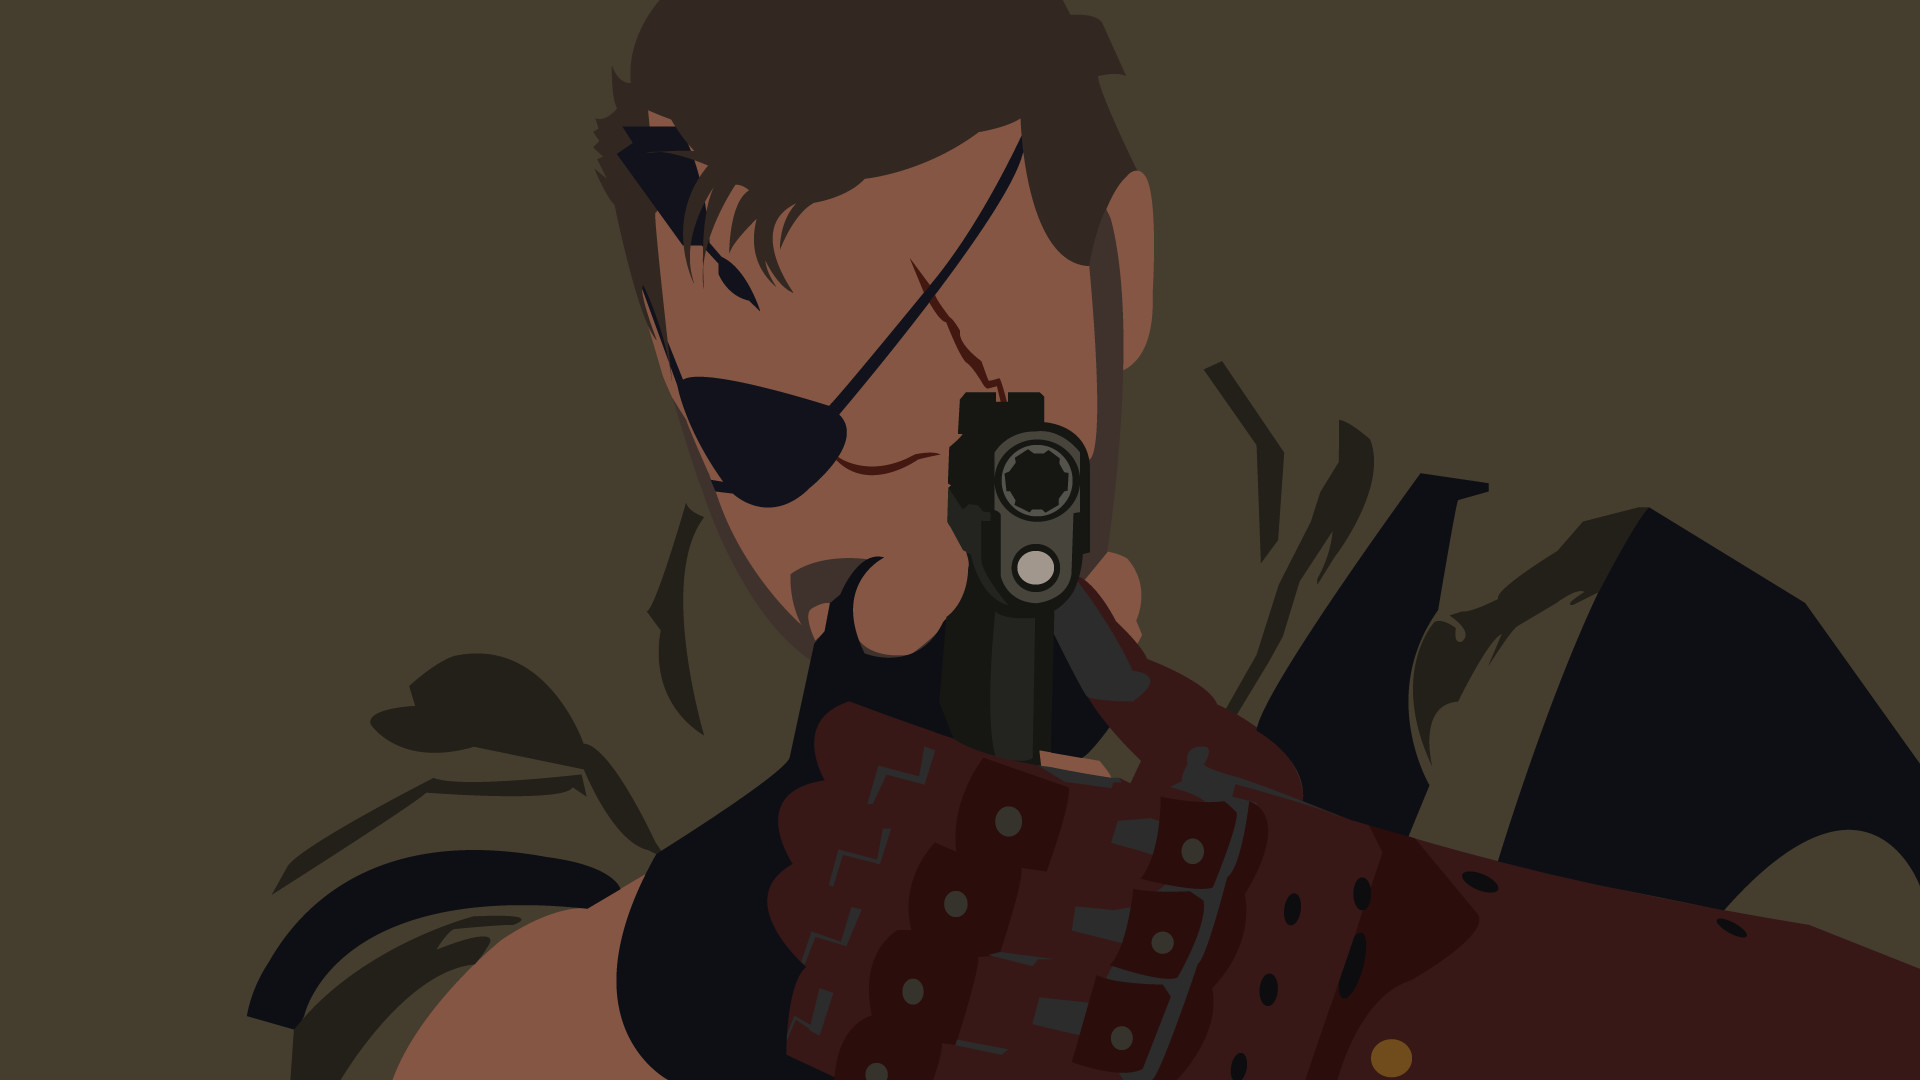 I create vector wallpapers for fun as a hobby. Latest one is Venom Snake!